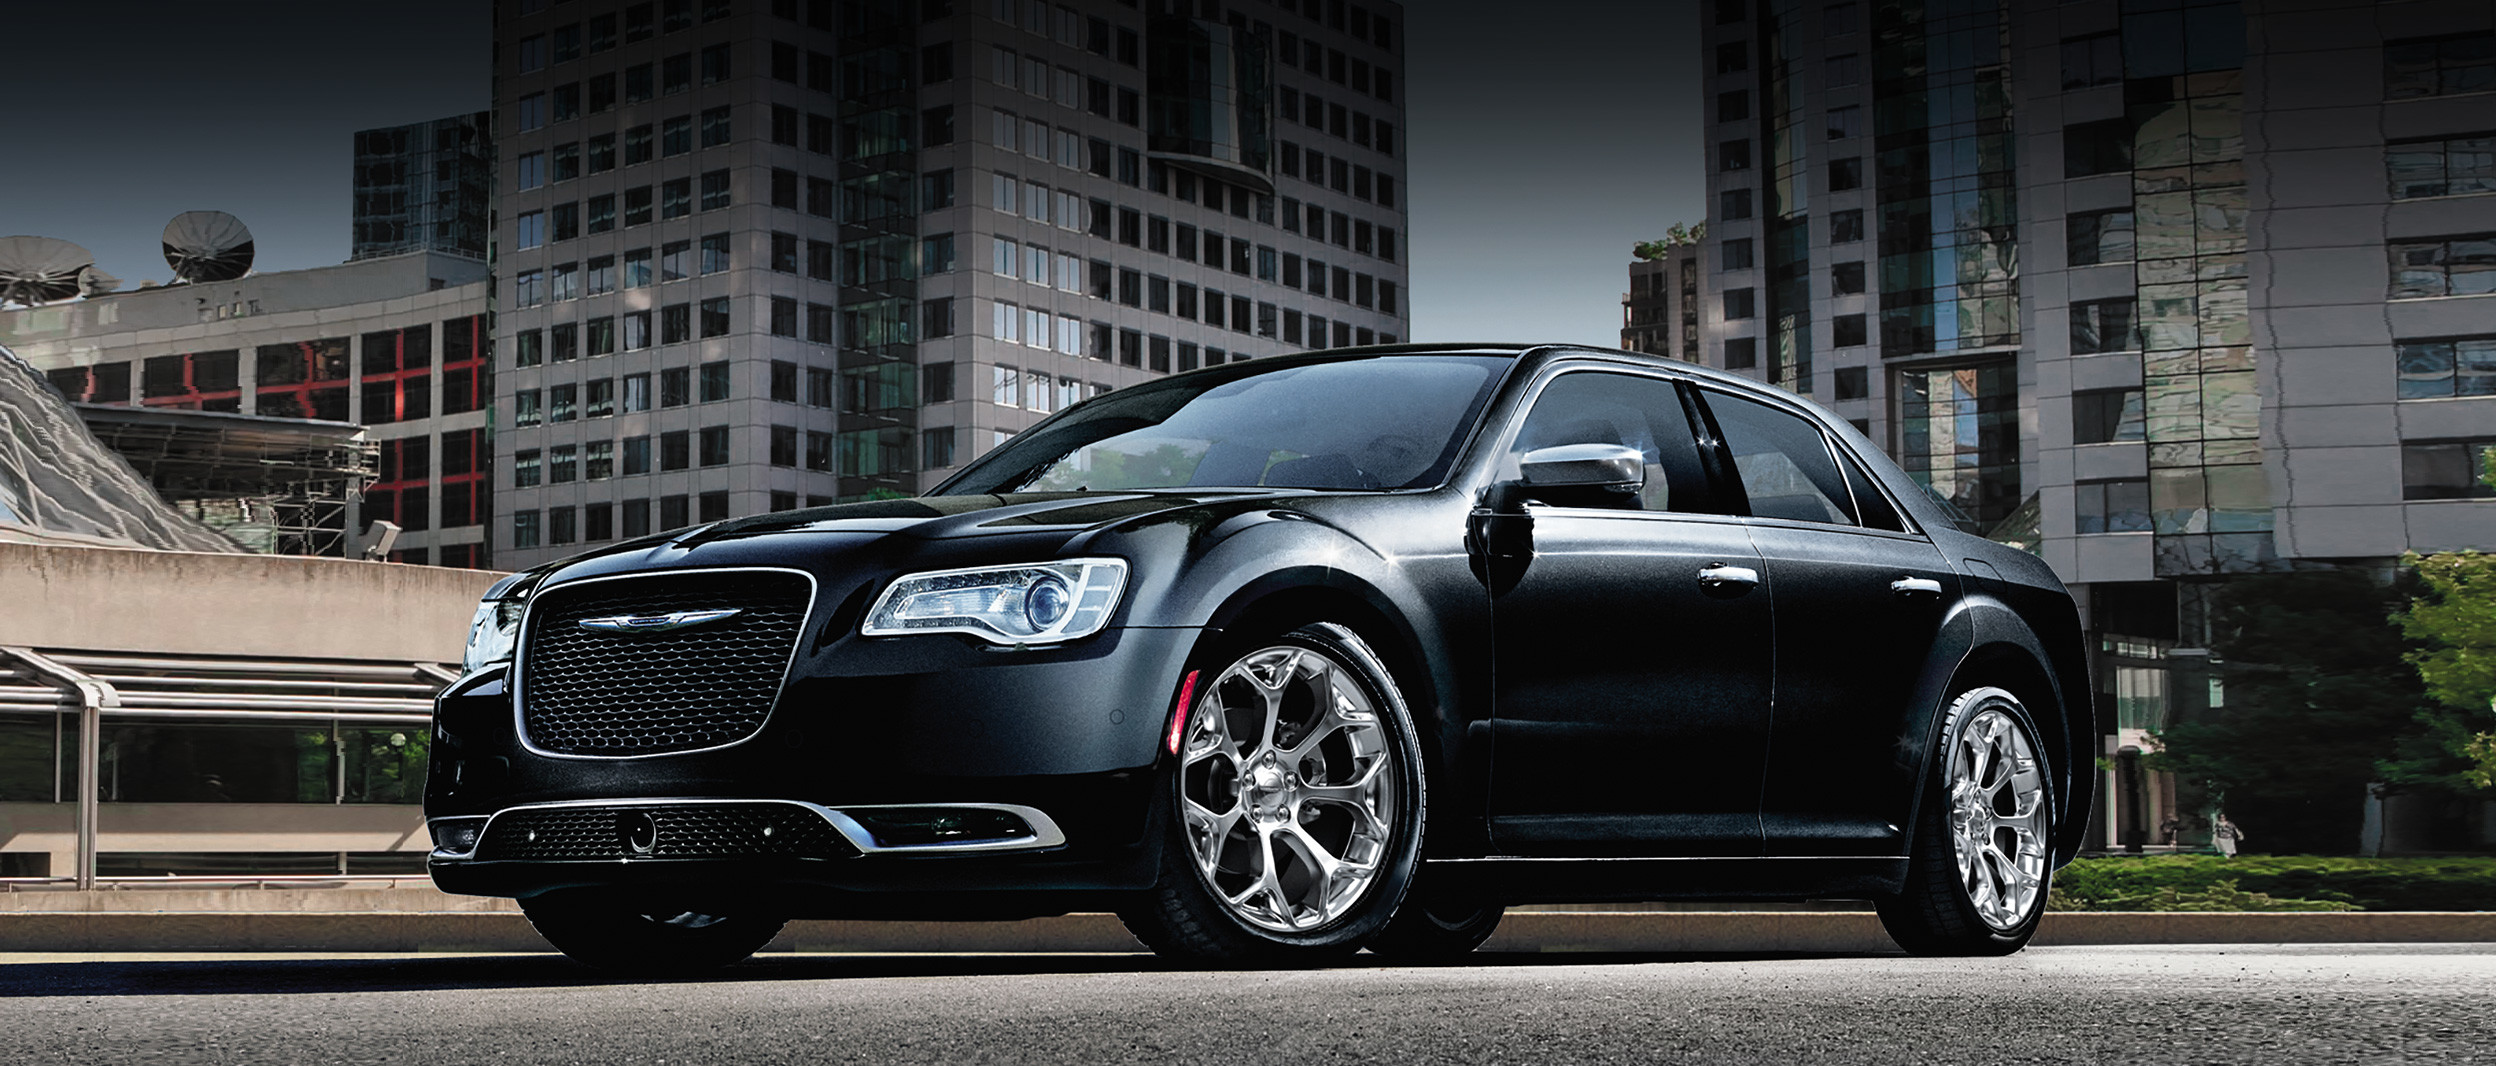 The black 2020 Chrysler 300 parked on a road in urban area